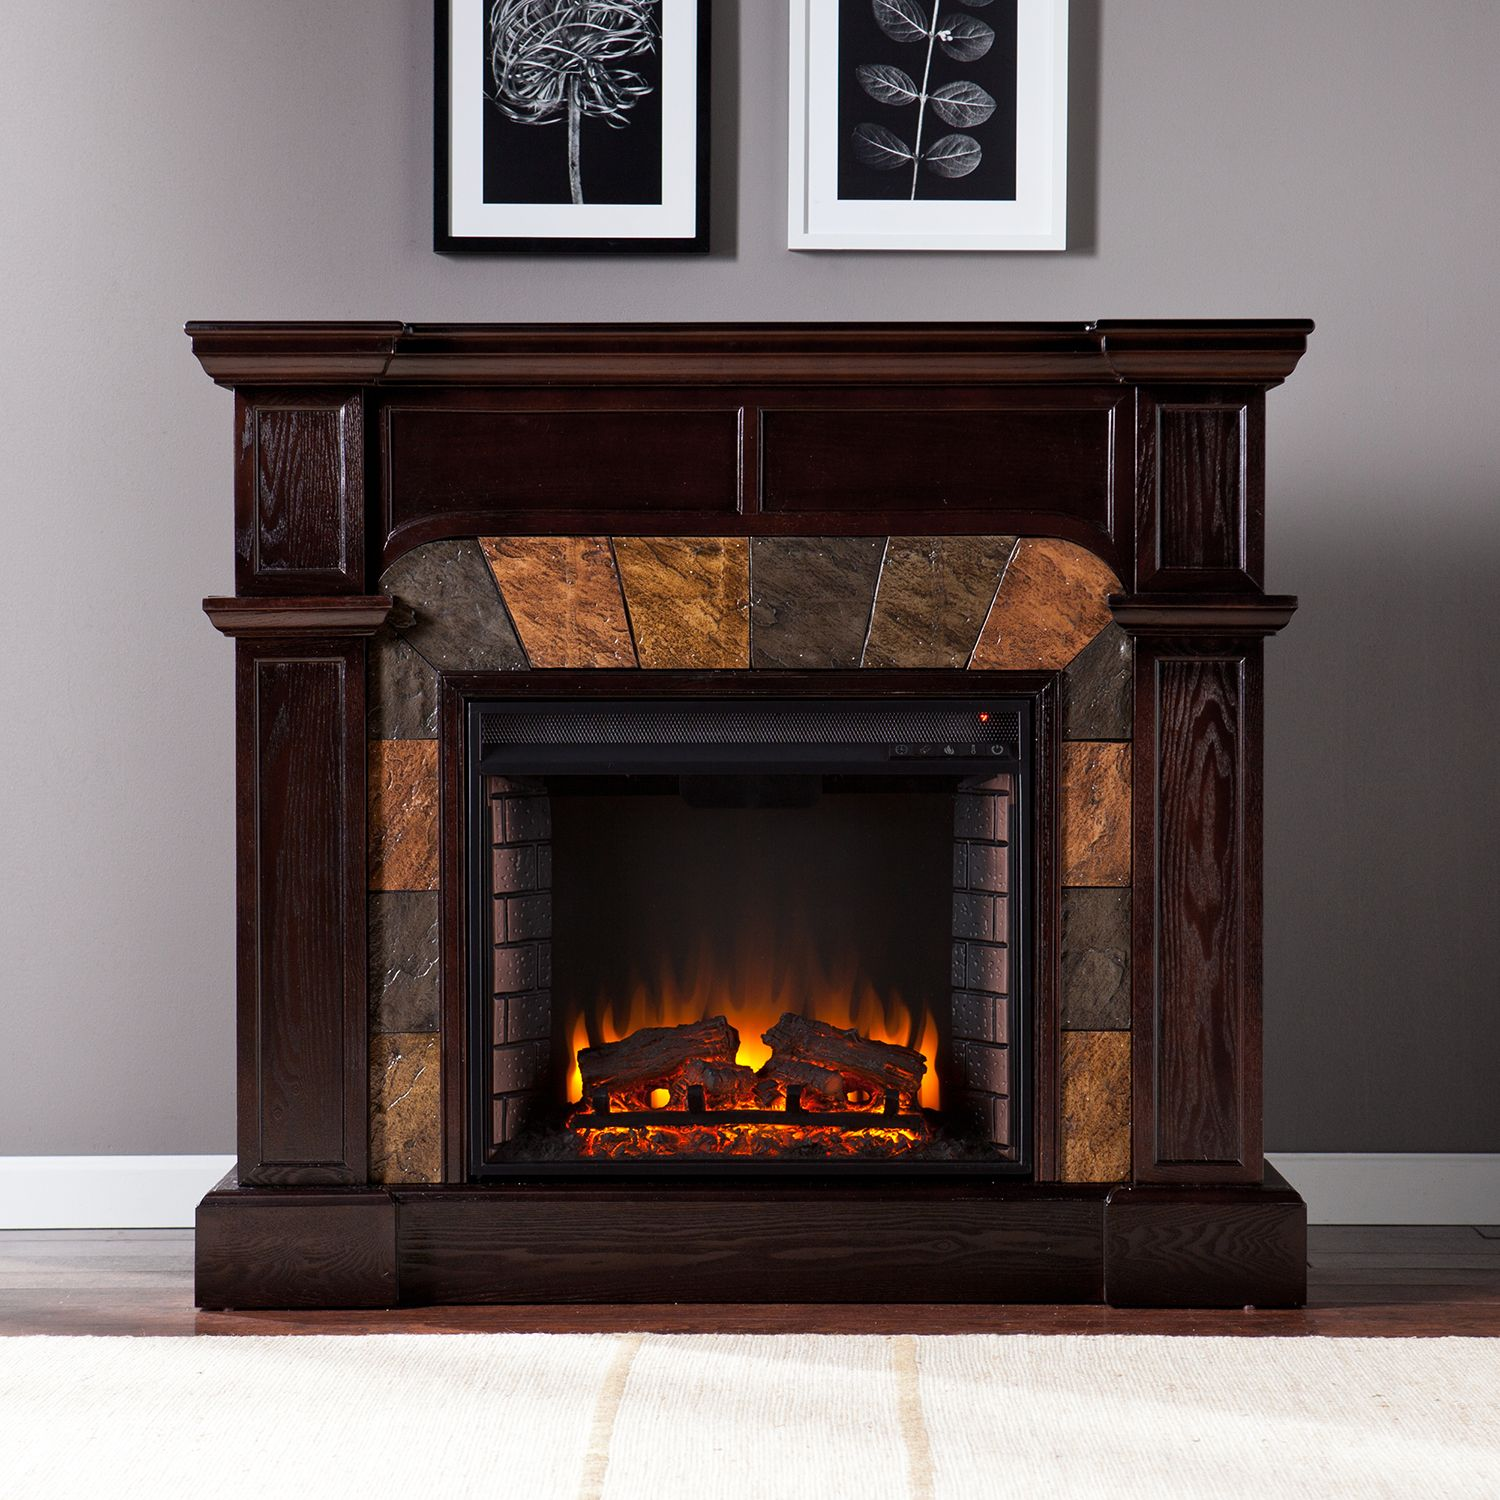 The Truth About Buying a Cheap Electric Fireplace